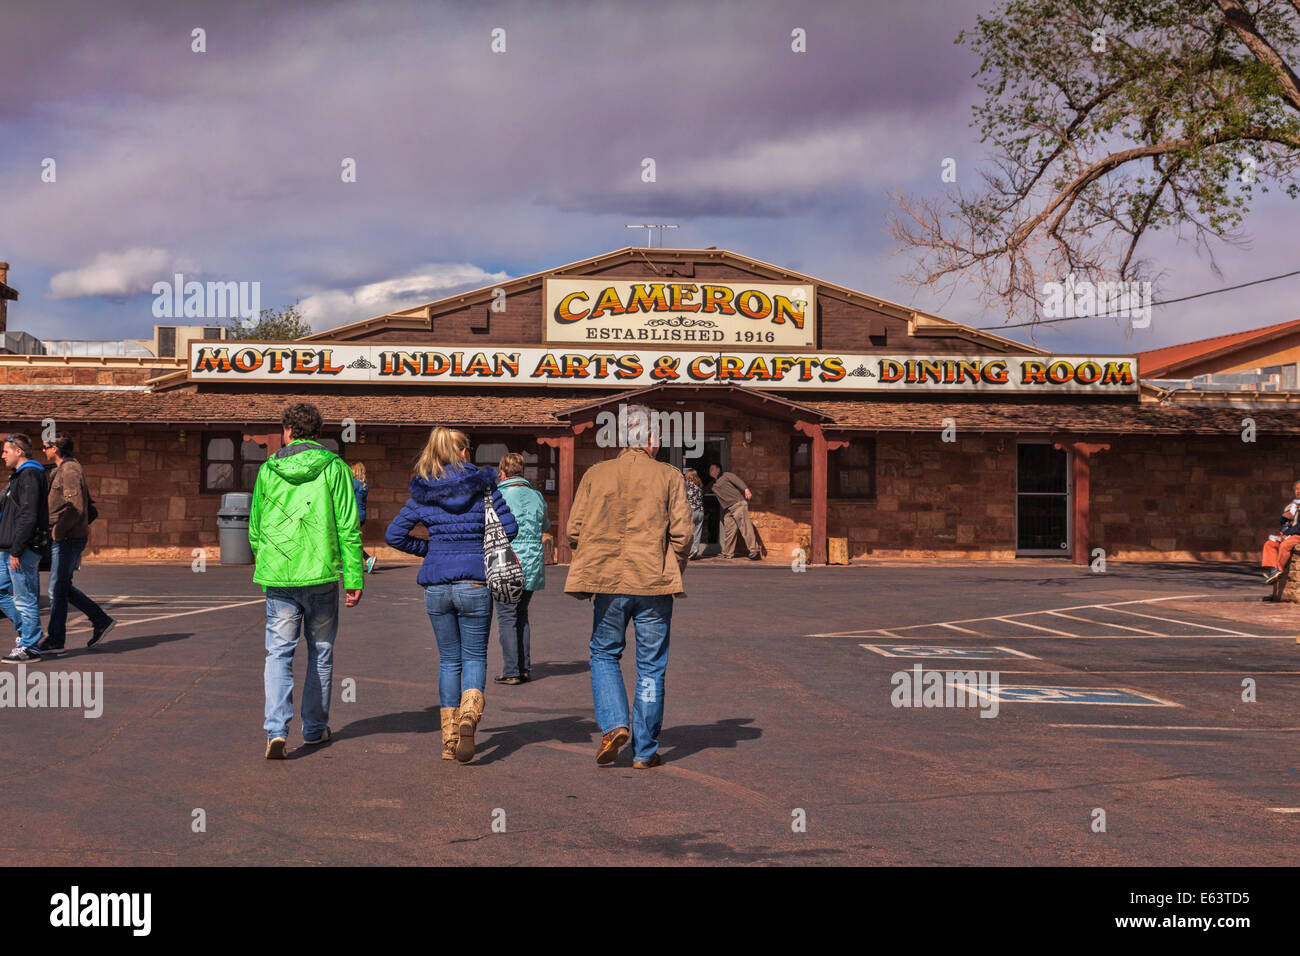 map my walk free with Stock Photo Indian Trading Post At Cameron Arizona 72614449 on StarfinderAdventurePath additionally 15245747082 as well 2438484620 together with The Hvcc Poker Run Is Only A Month Away likewise Hotel Indigo Shanghai On The Bund.